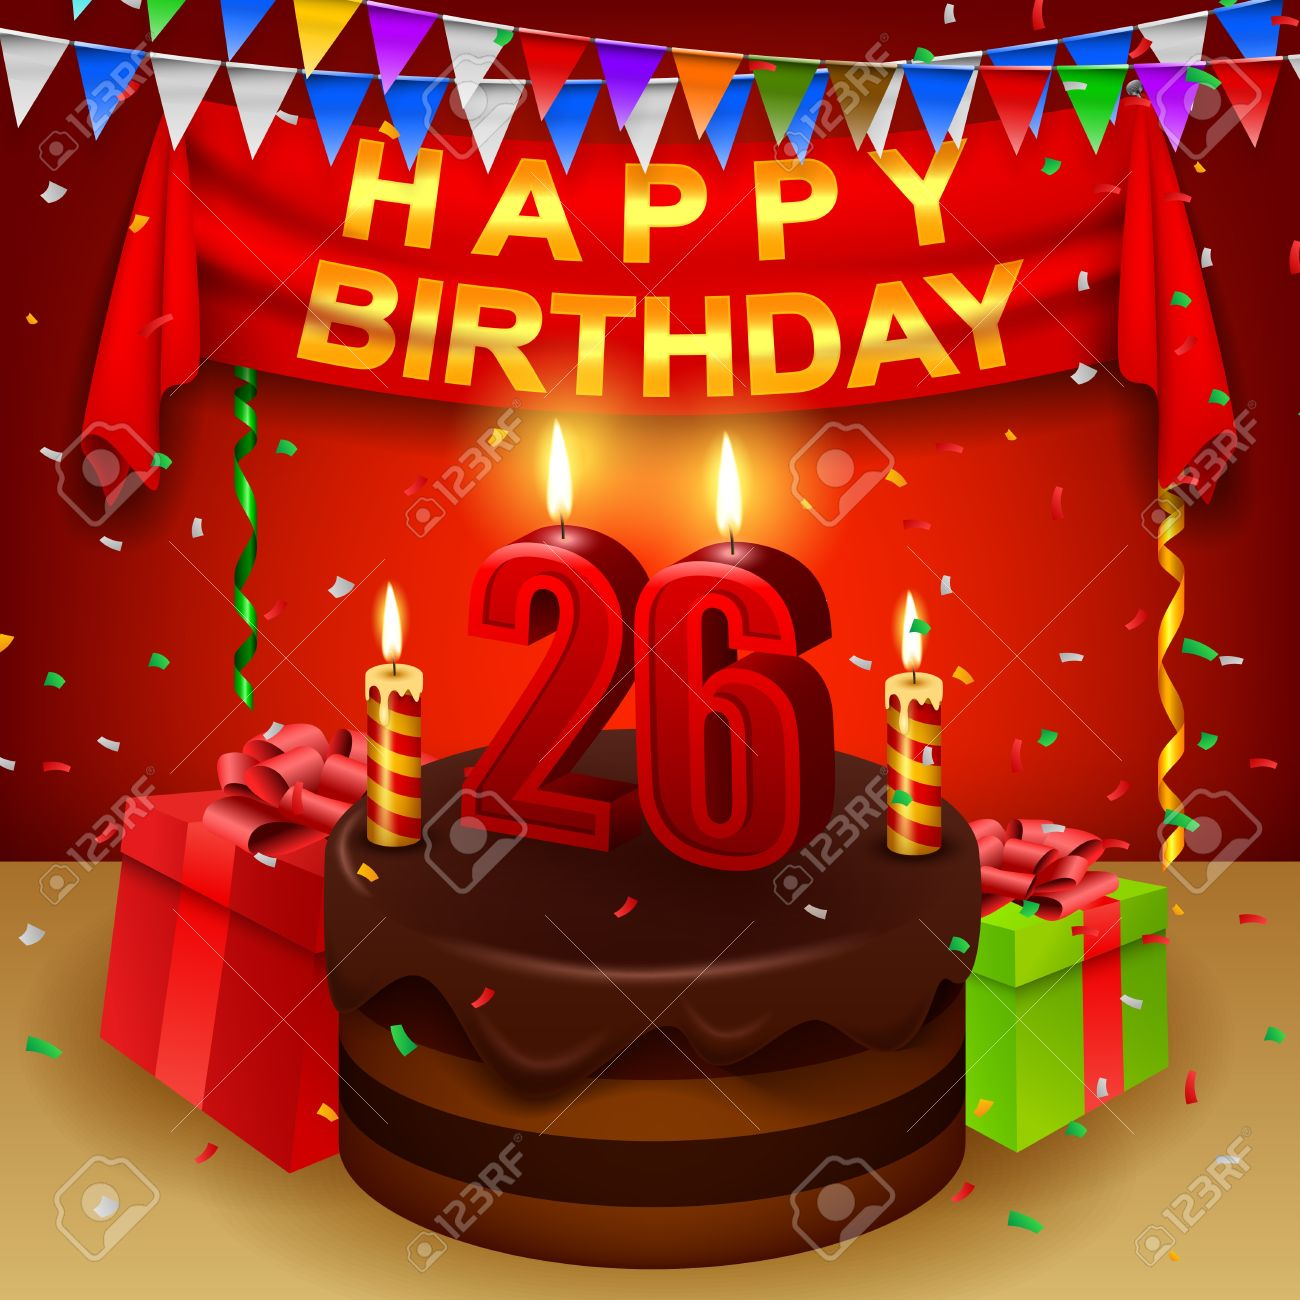 happy 26th birthday with chocolate cream cake and triangular flag stock vector 53648255